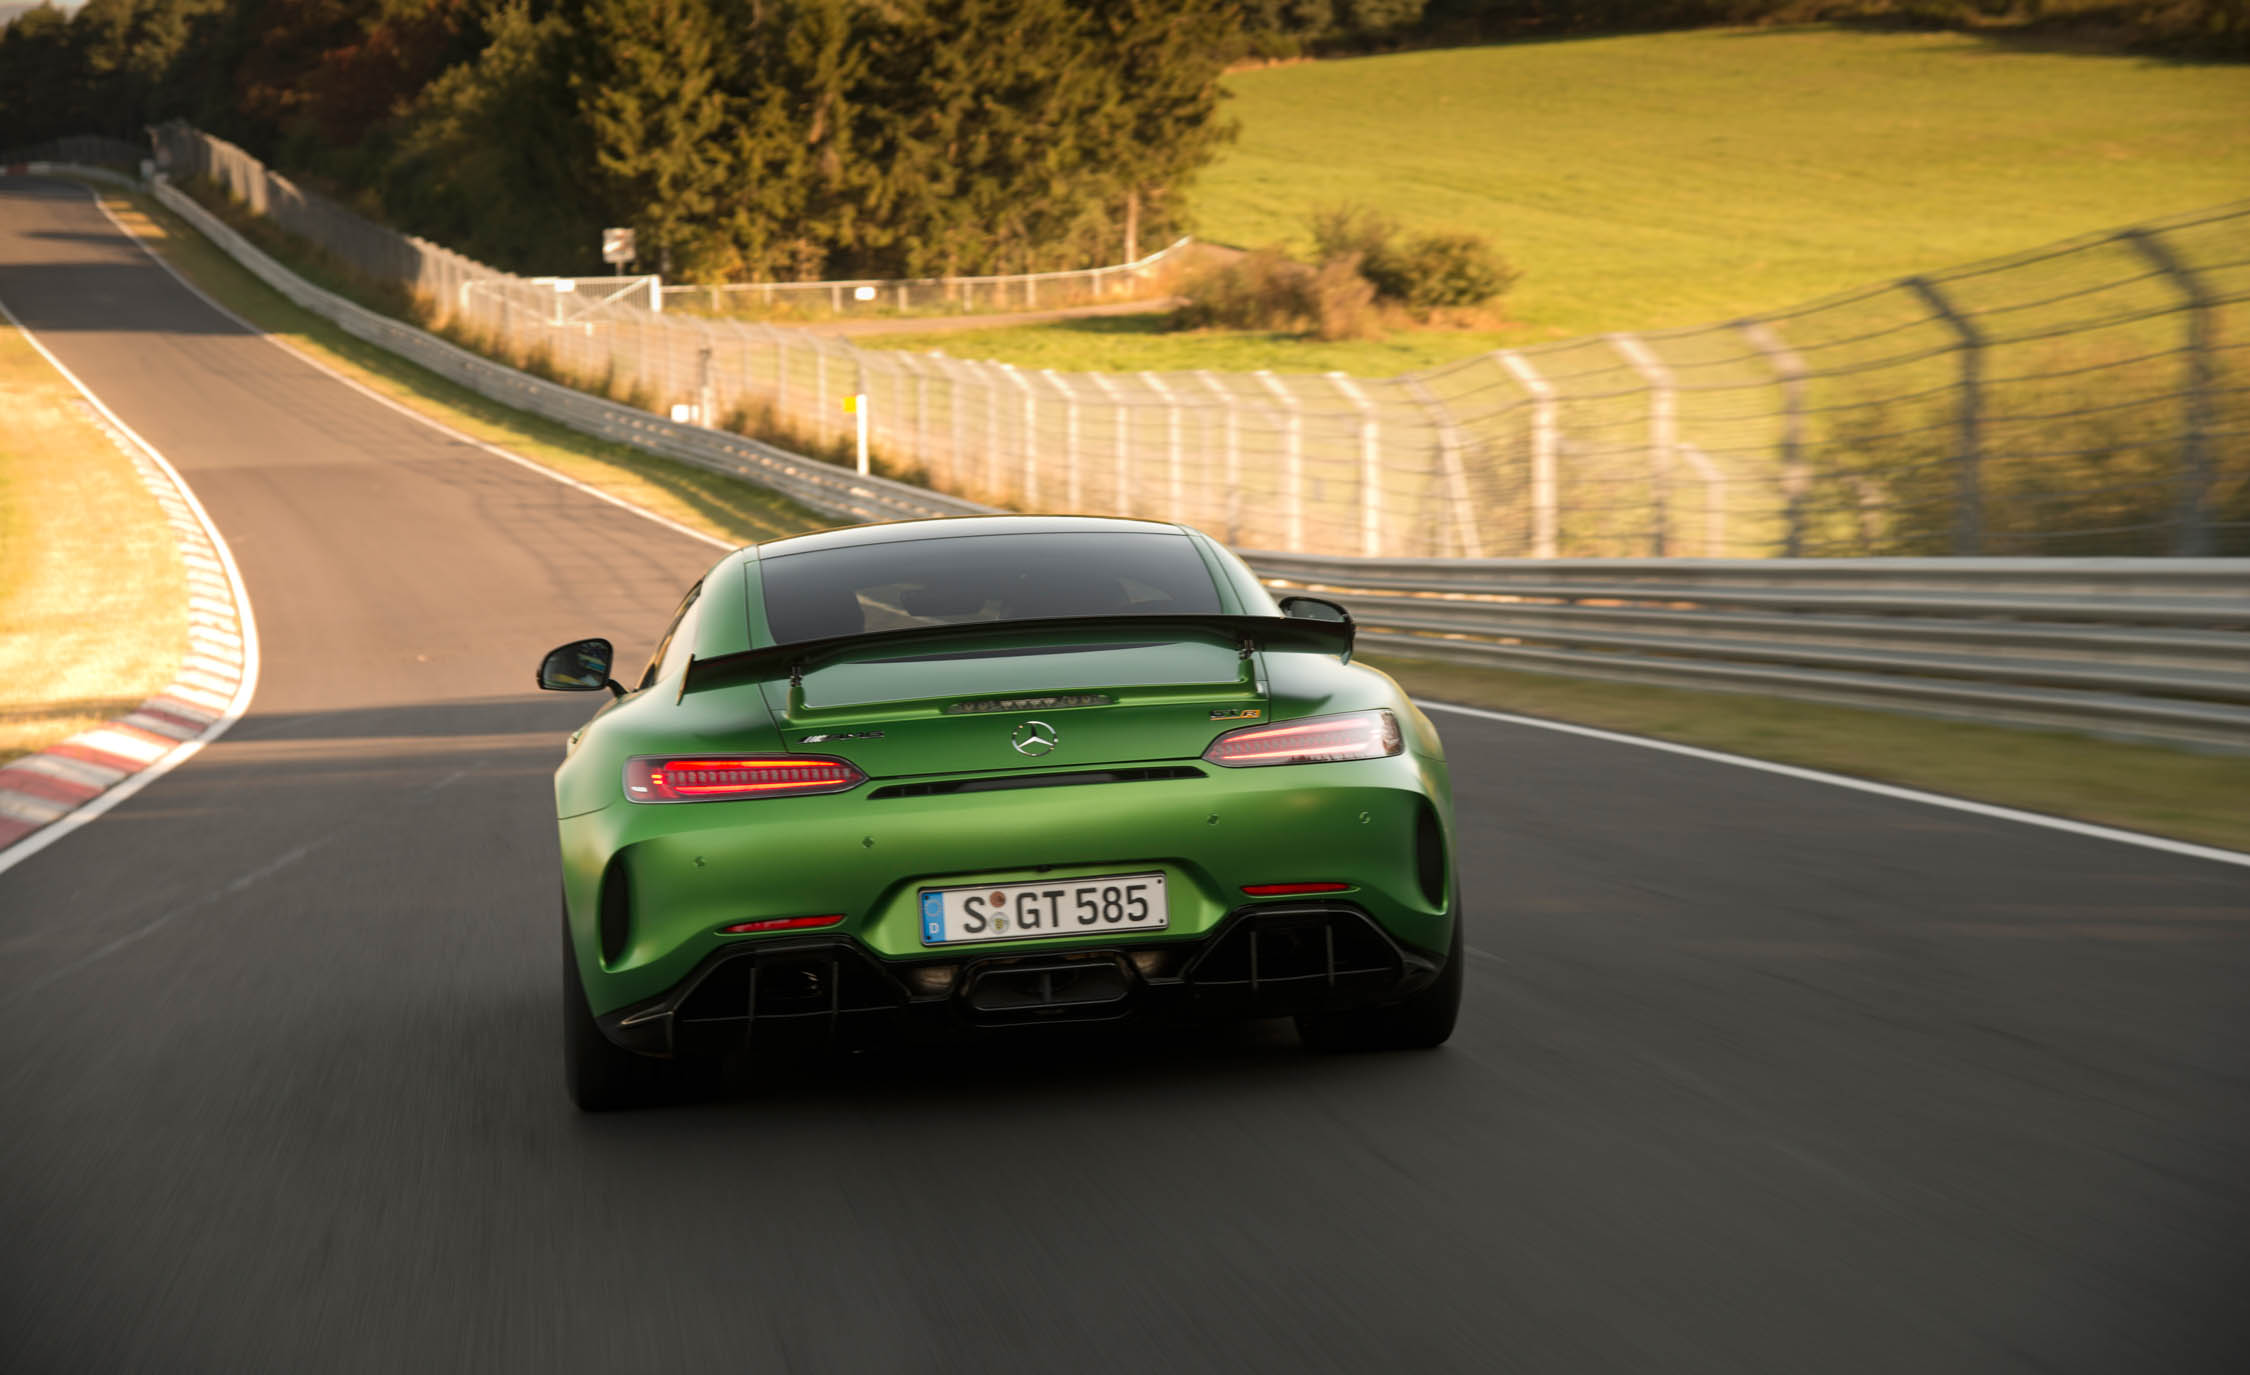 2017 Mercedes Amg Gt R Rear View (View 6 of 22)